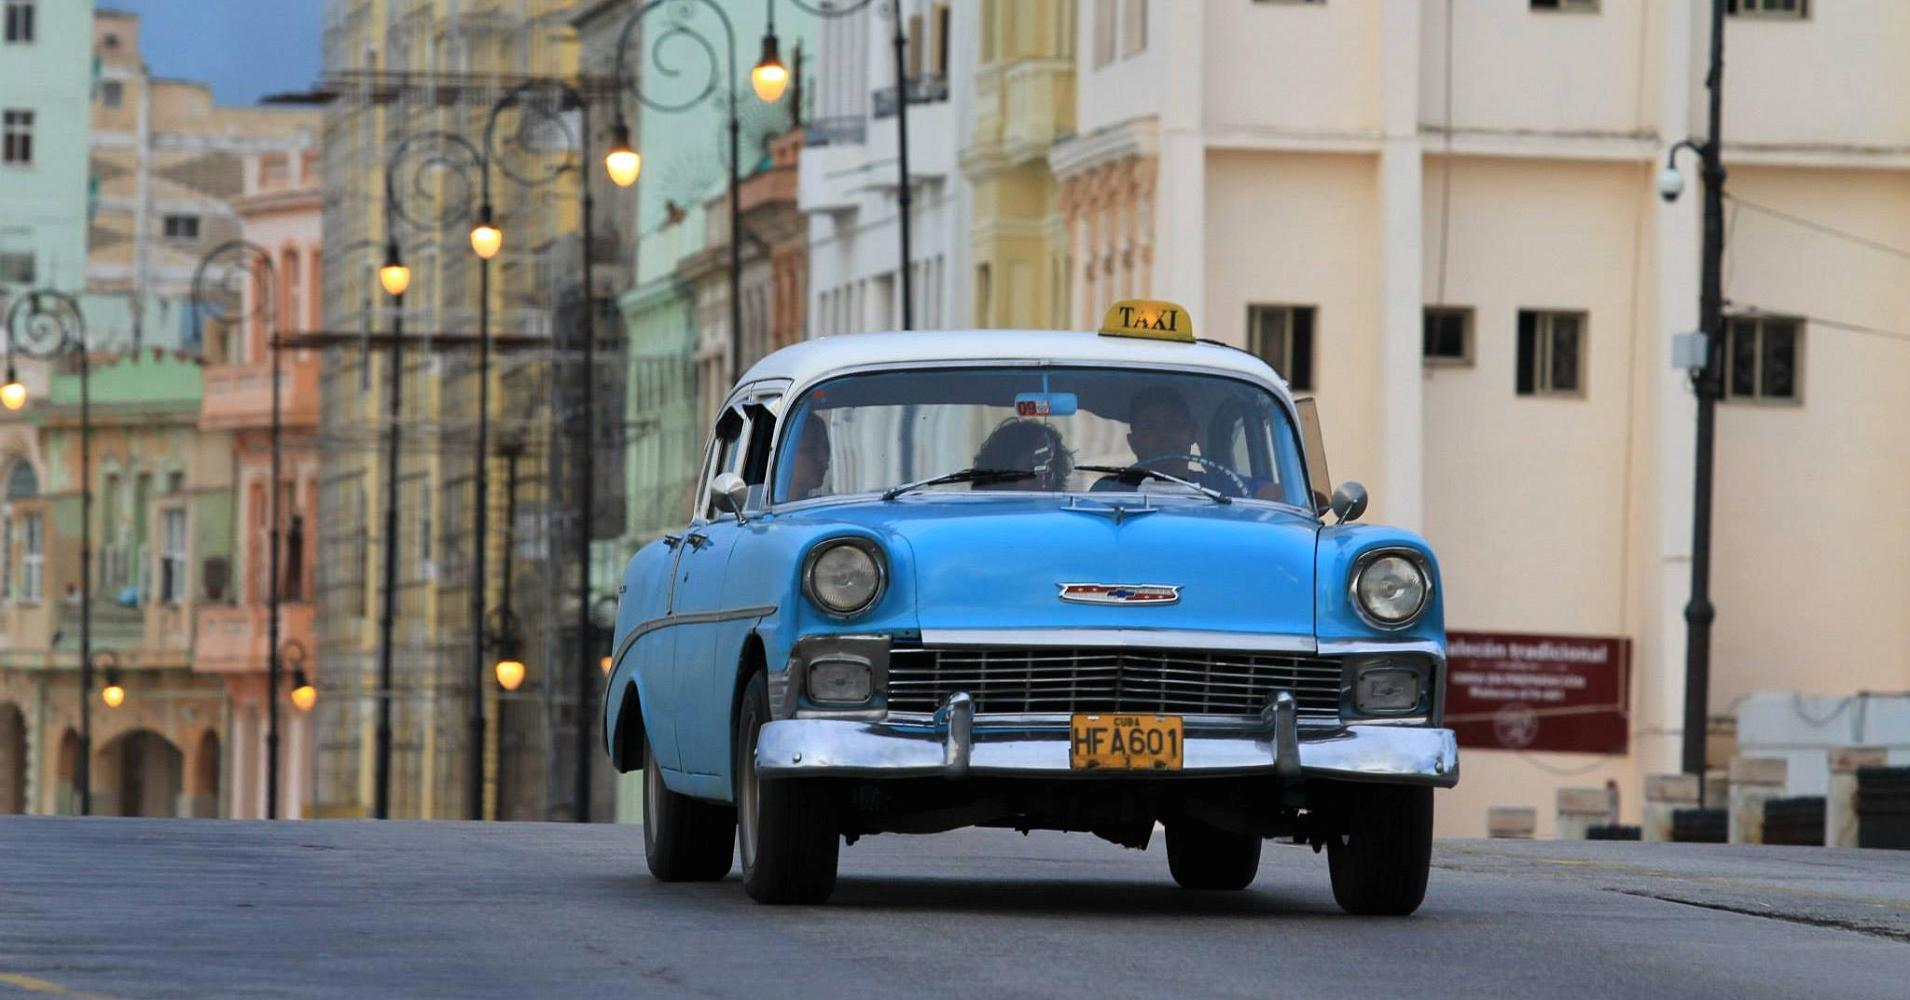 They're alive! Cuba's Frankenstein classic cars